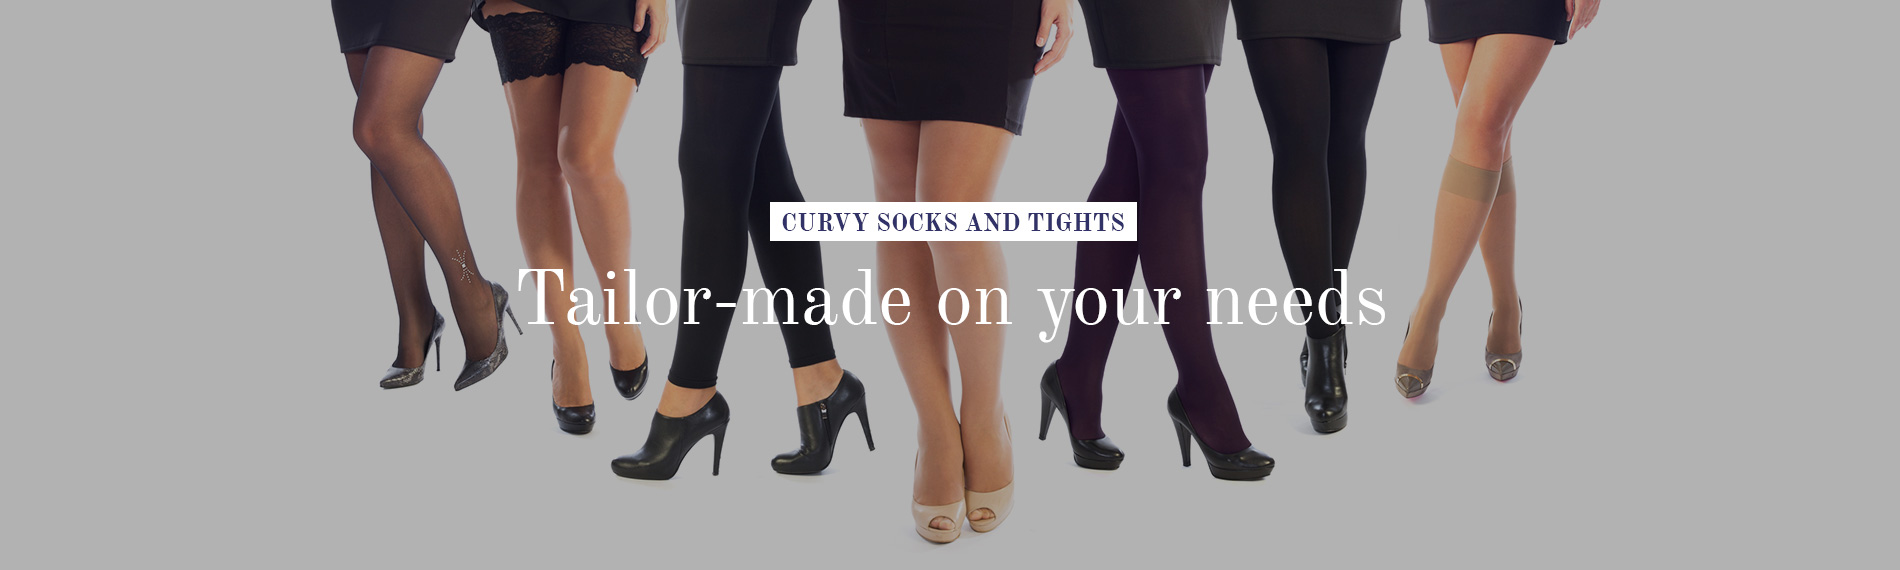 Curvy socks and tights, tailor-made on your needs